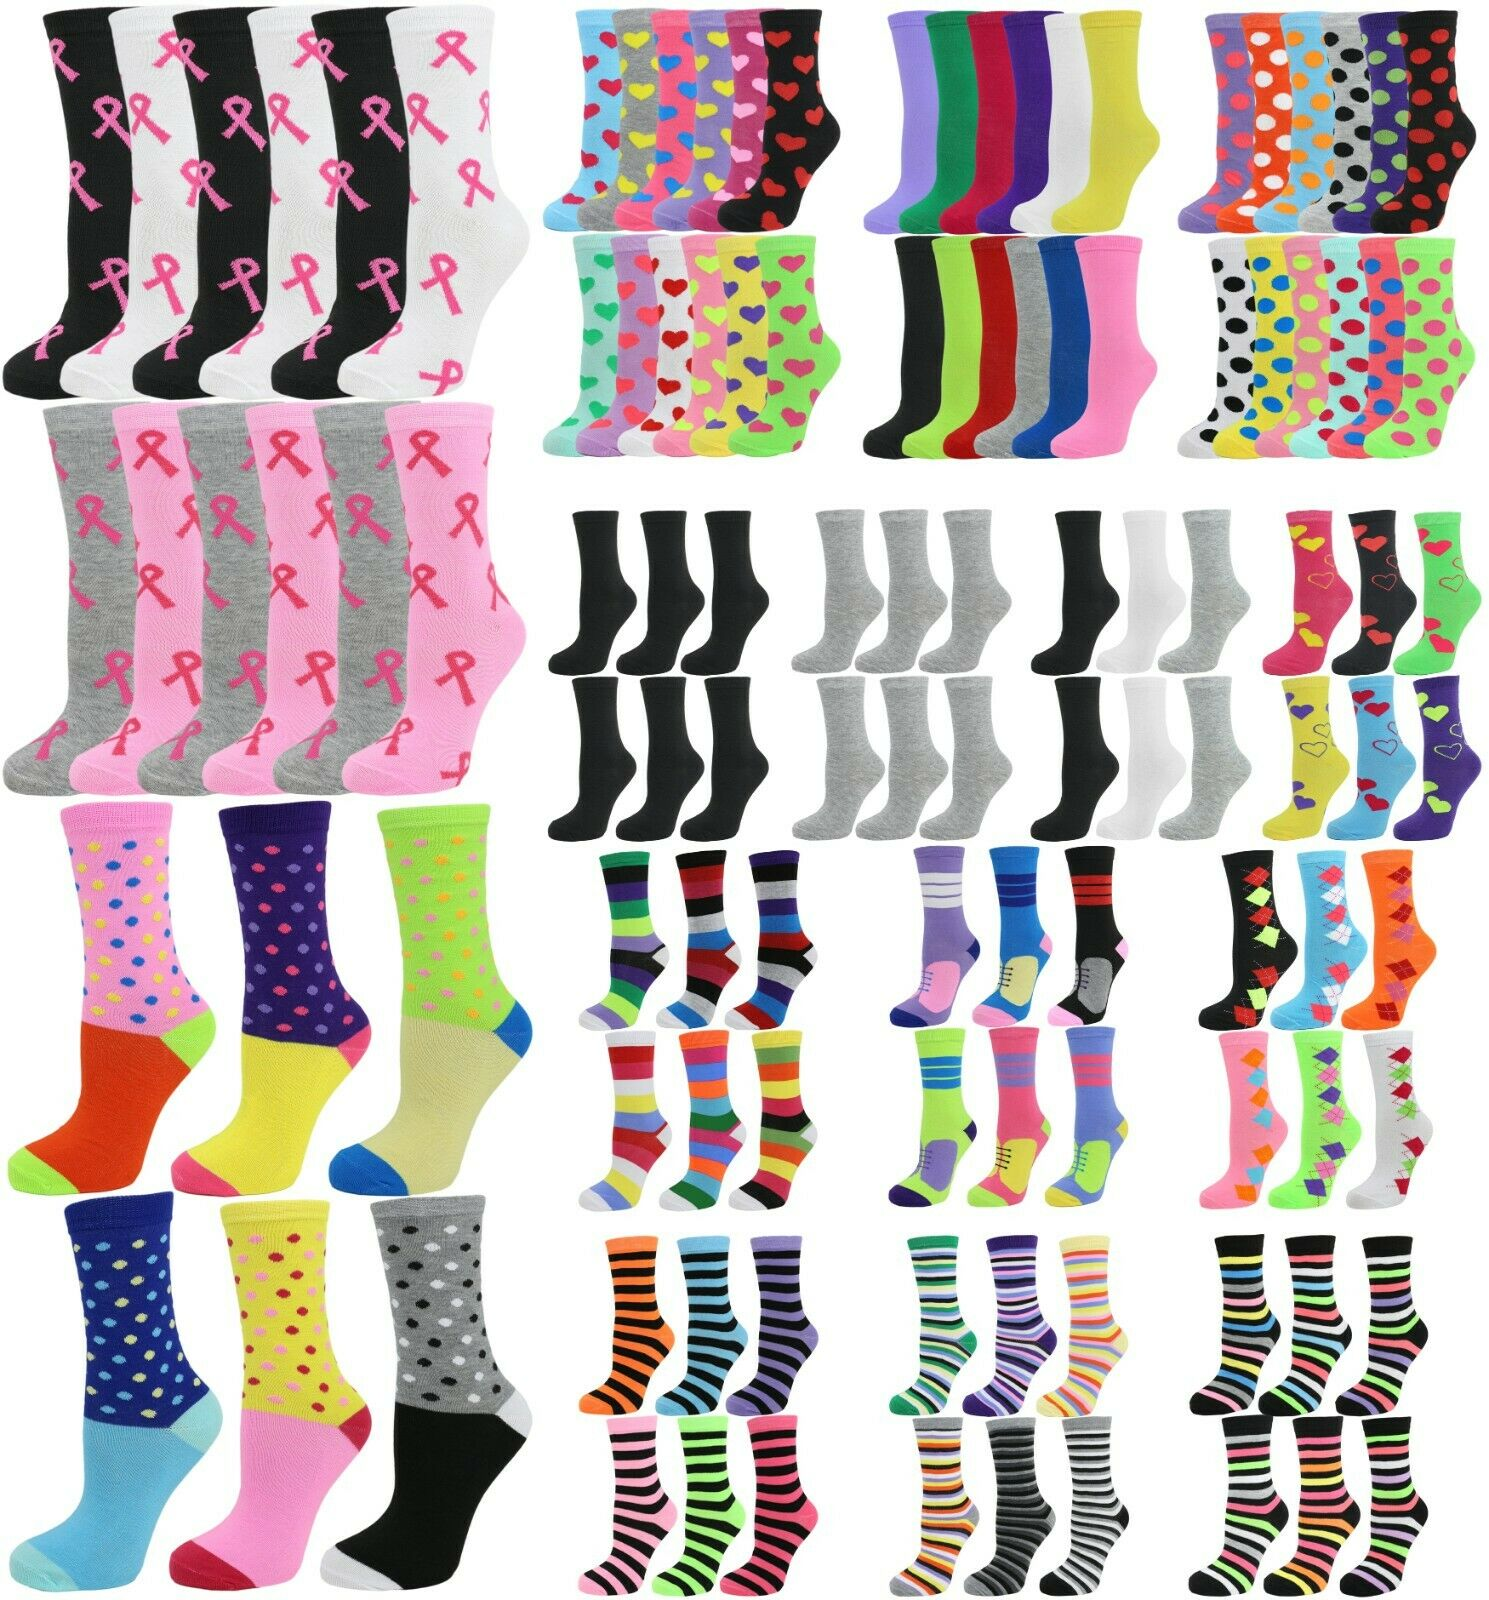 6 Pack/12 Pack Women's Cotton Crew Socks Clothing, Shoes & Accessories